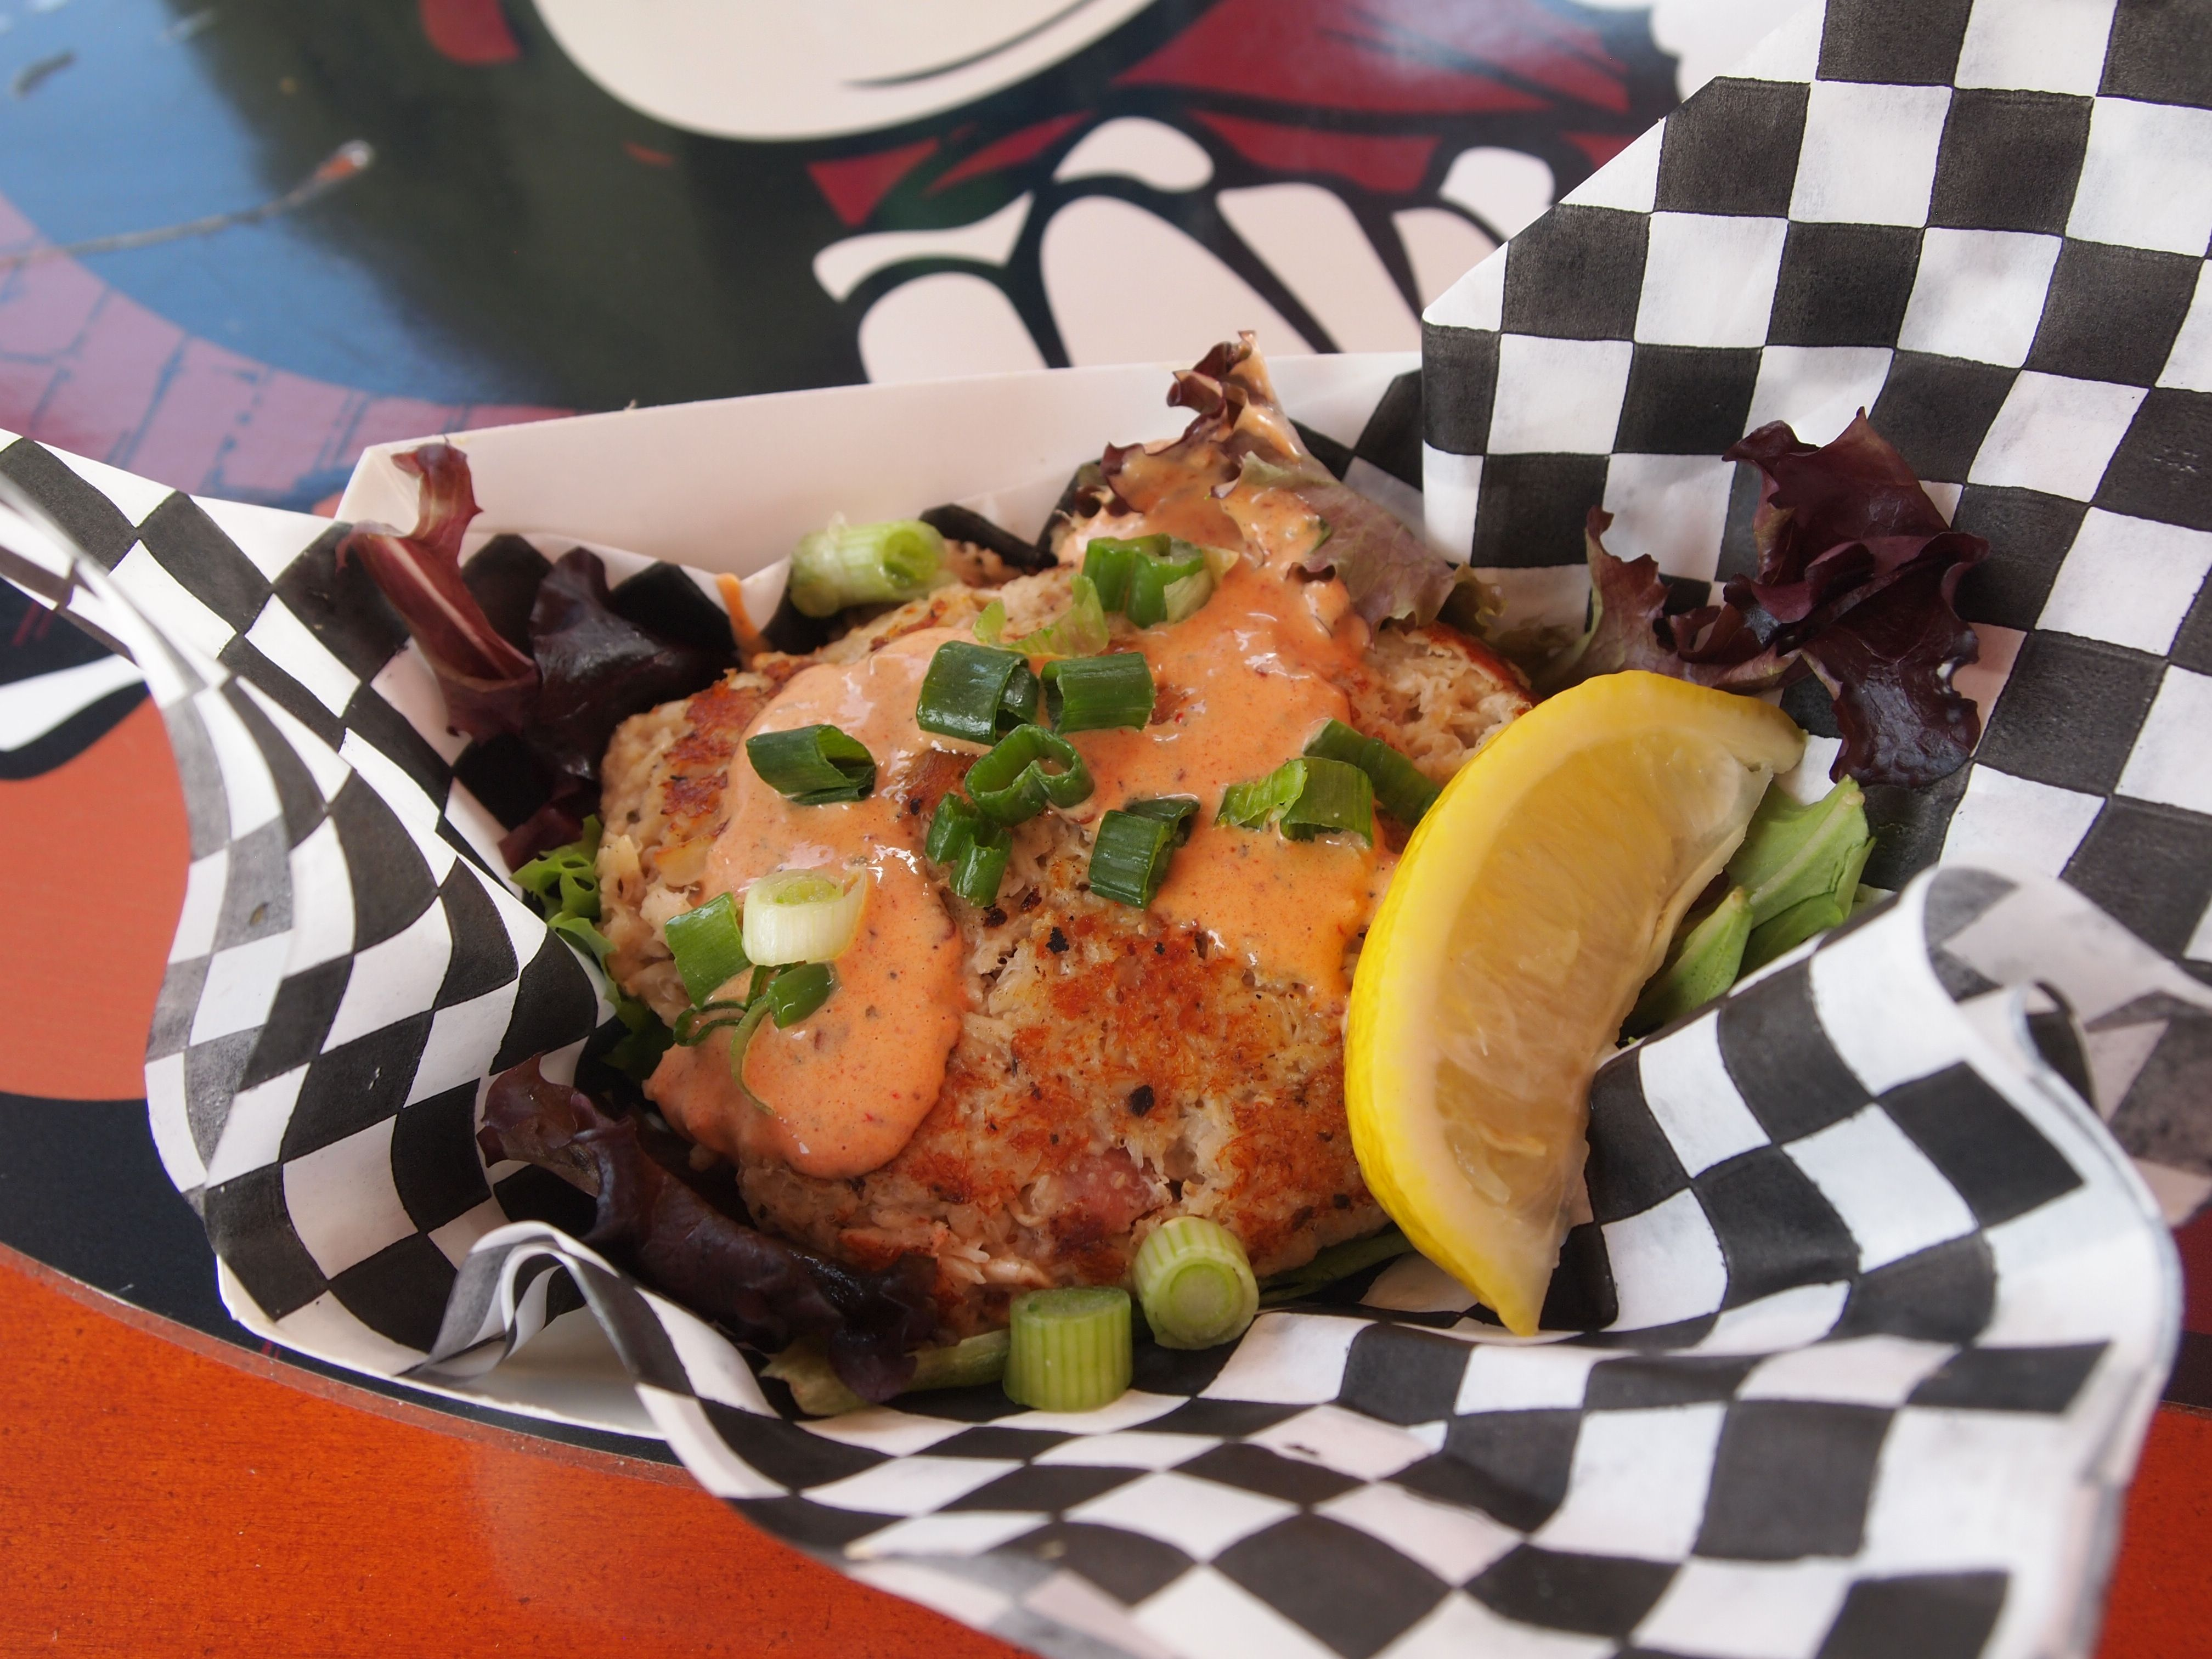 Bacon Beer Crab Cakes, infused with bacon and Sierra Nevada Kellerweis | Traveling Monk #Chandler #Arizona #FoodTruck | Best Food Truck of Arizona Festival 2014 | Photo by Kim M. Bayne for Street Food Files